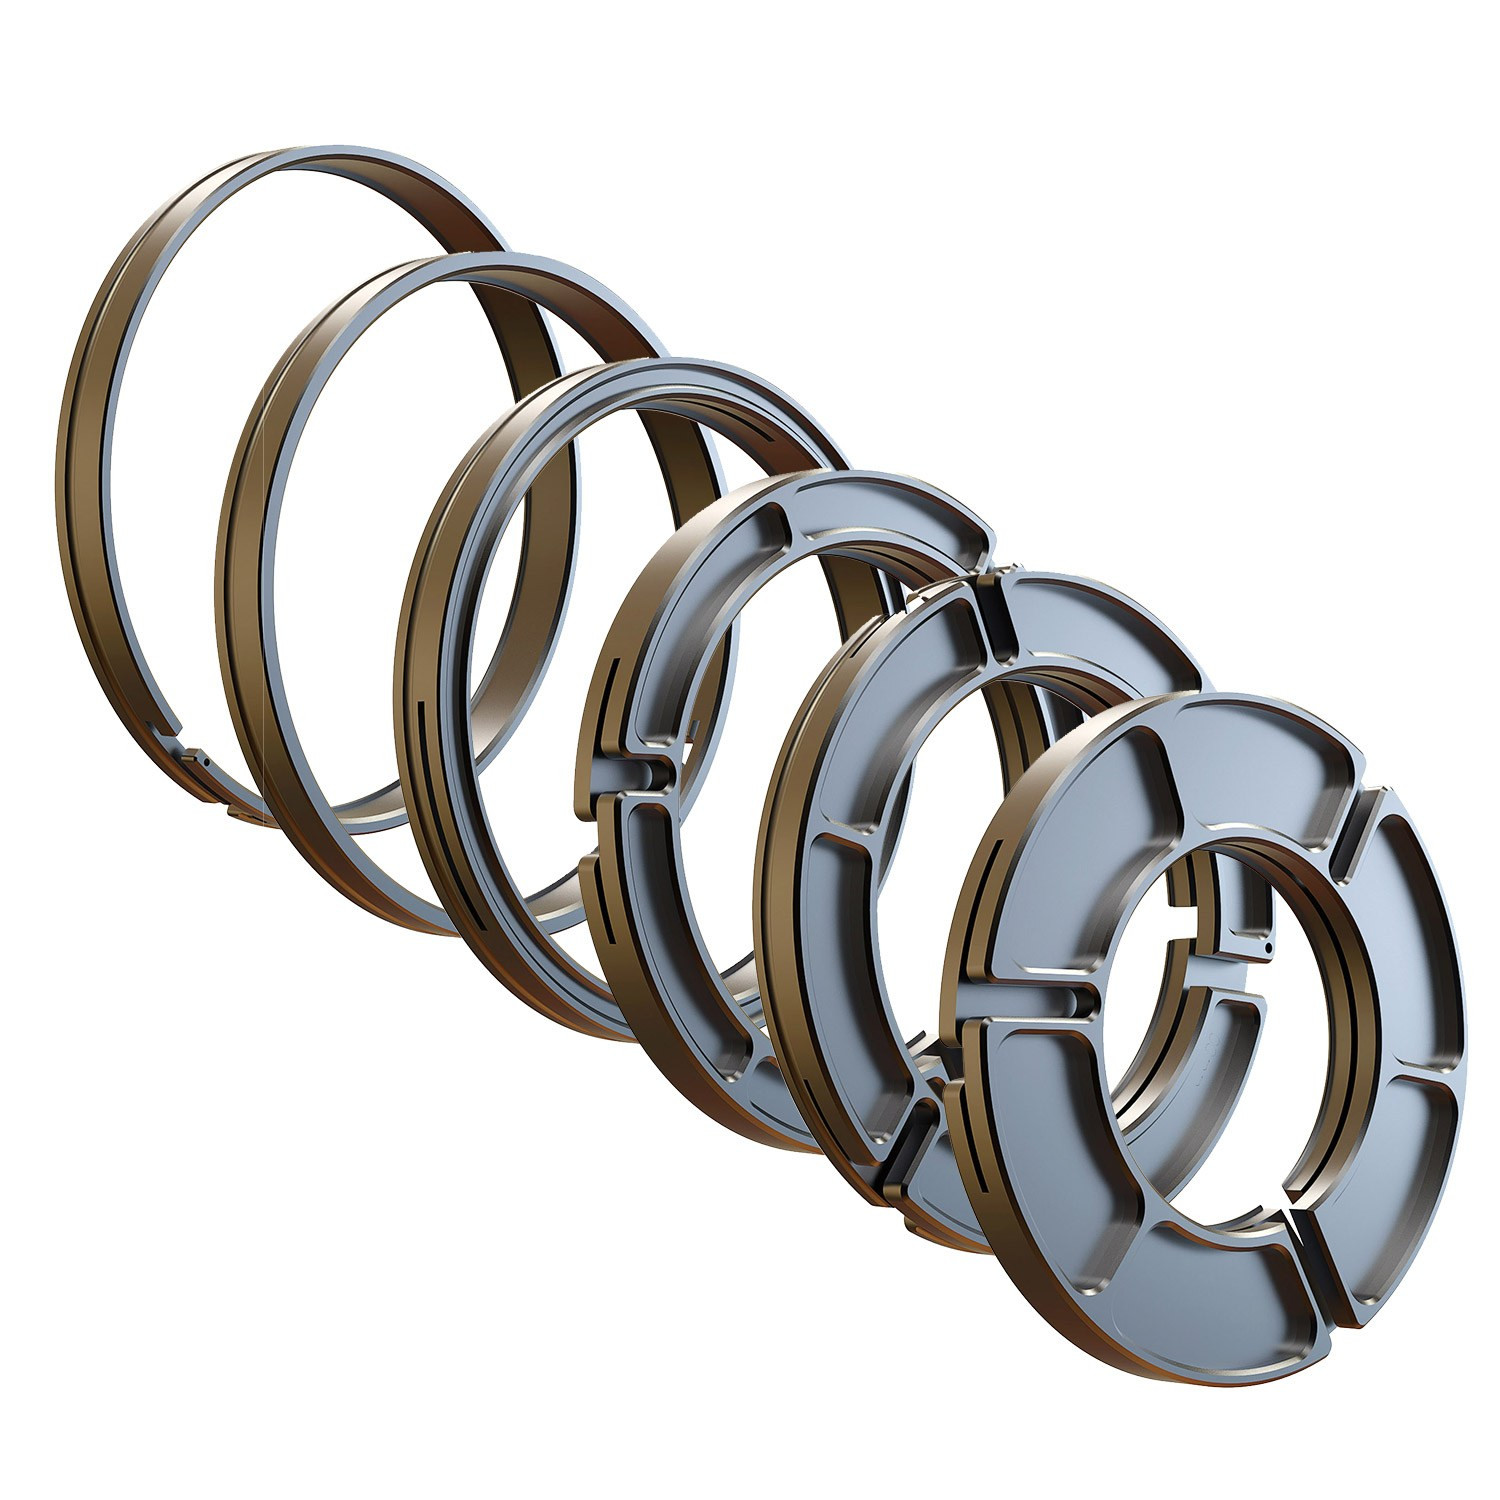 Clamp-on rings